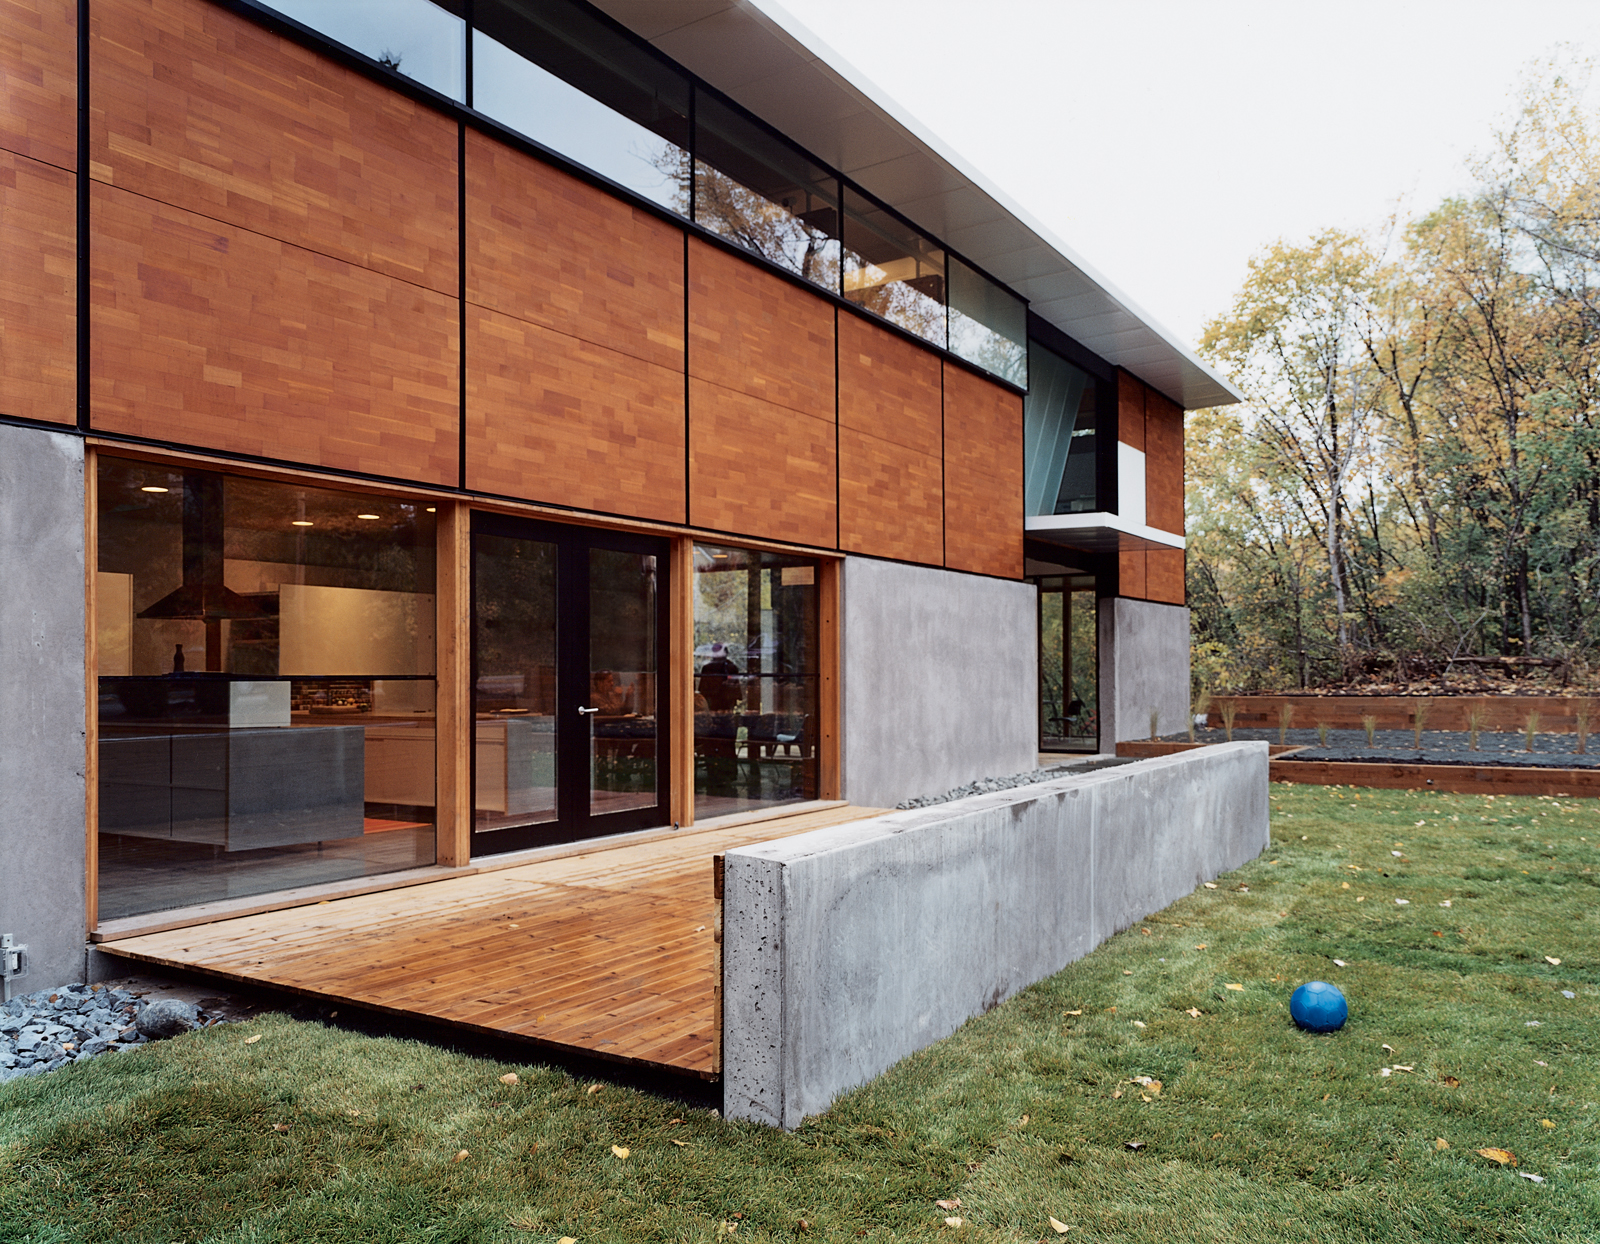 Modular Concrete Homes Modular Homes Redefining Lifestyle In An Affordable Manner Home